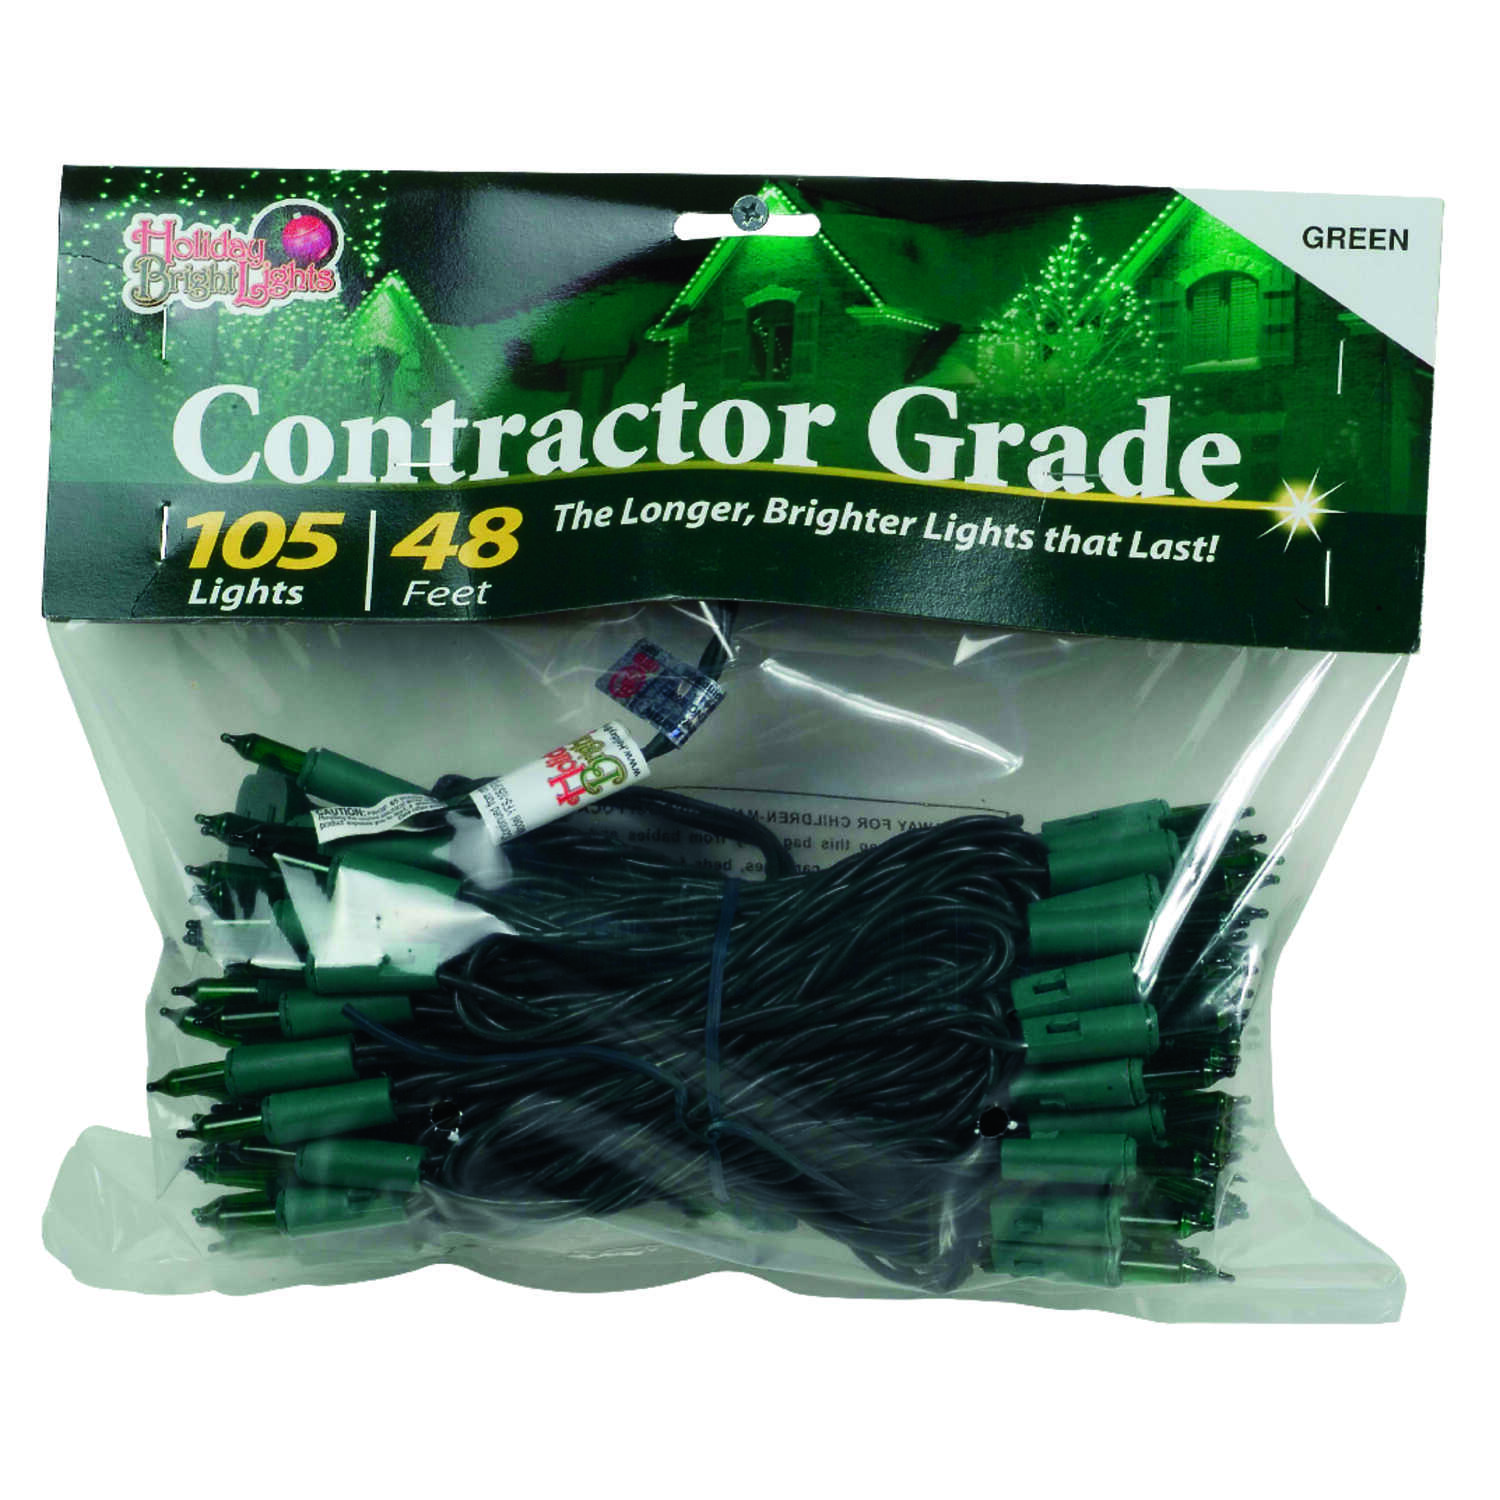 Holiday Bright Lights  Incandescent  Contractor  Light Set  Green  48 ft. 105 lights